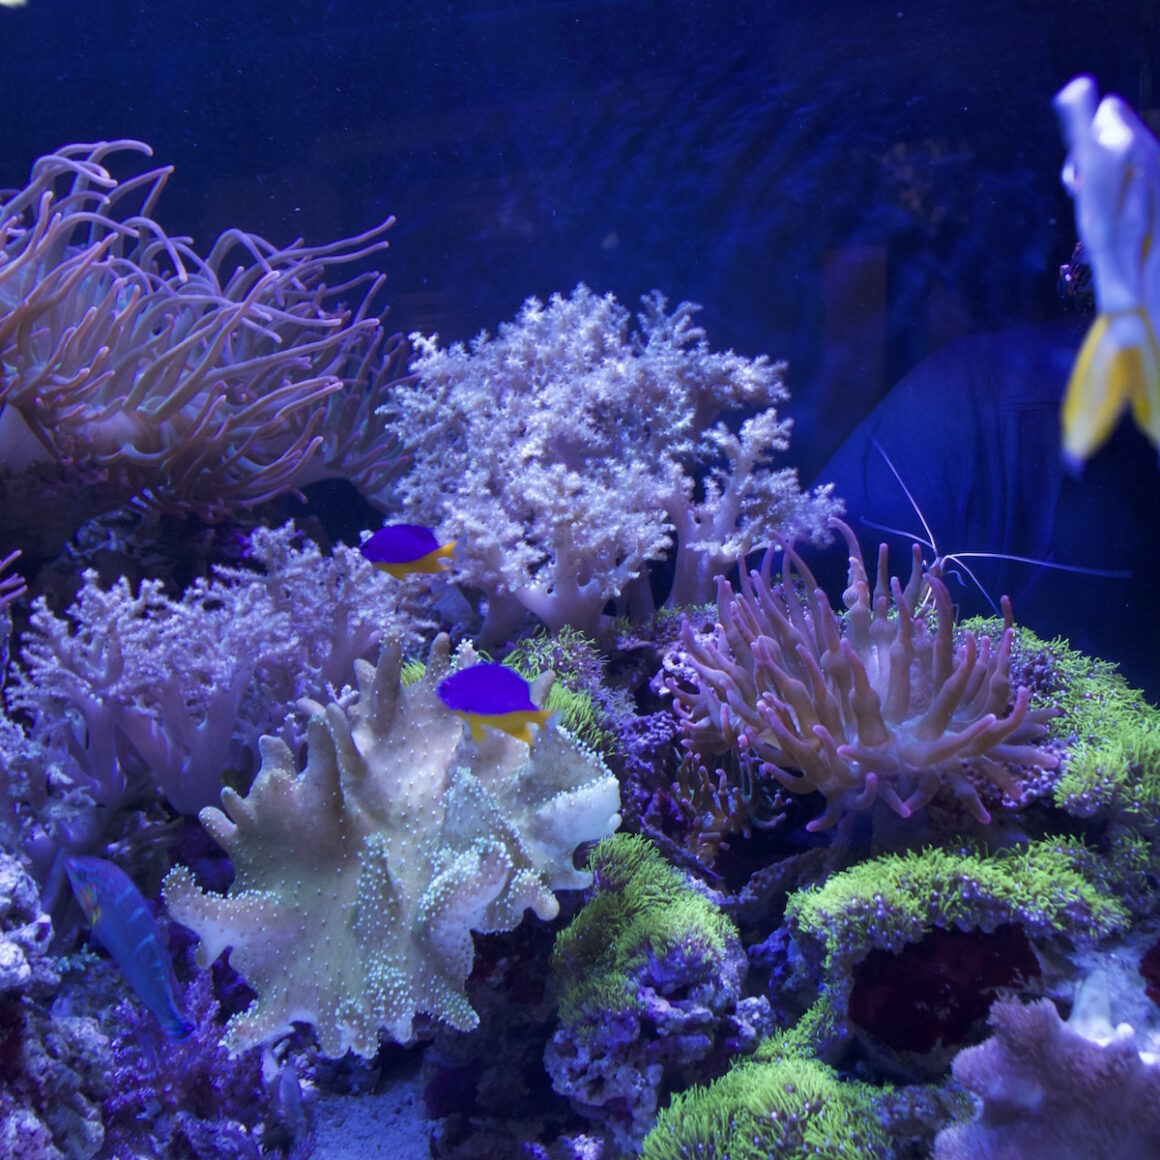 100 gallon fish tank with coral and fish